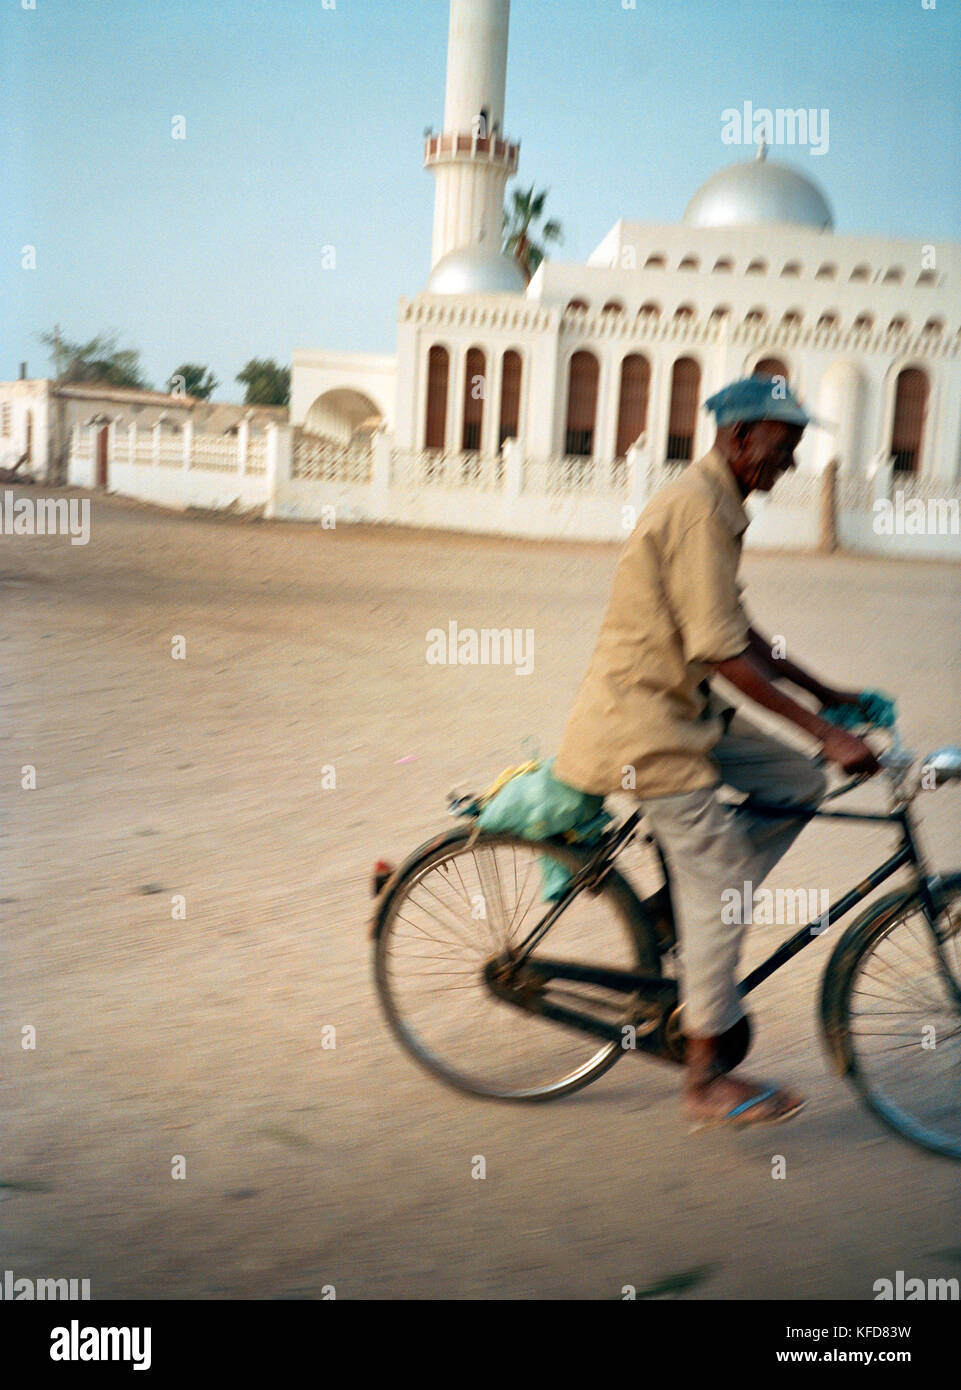 ERITREA, Massawa, a man rides his bicycle in front of a mosque in Massawa - Stock Image